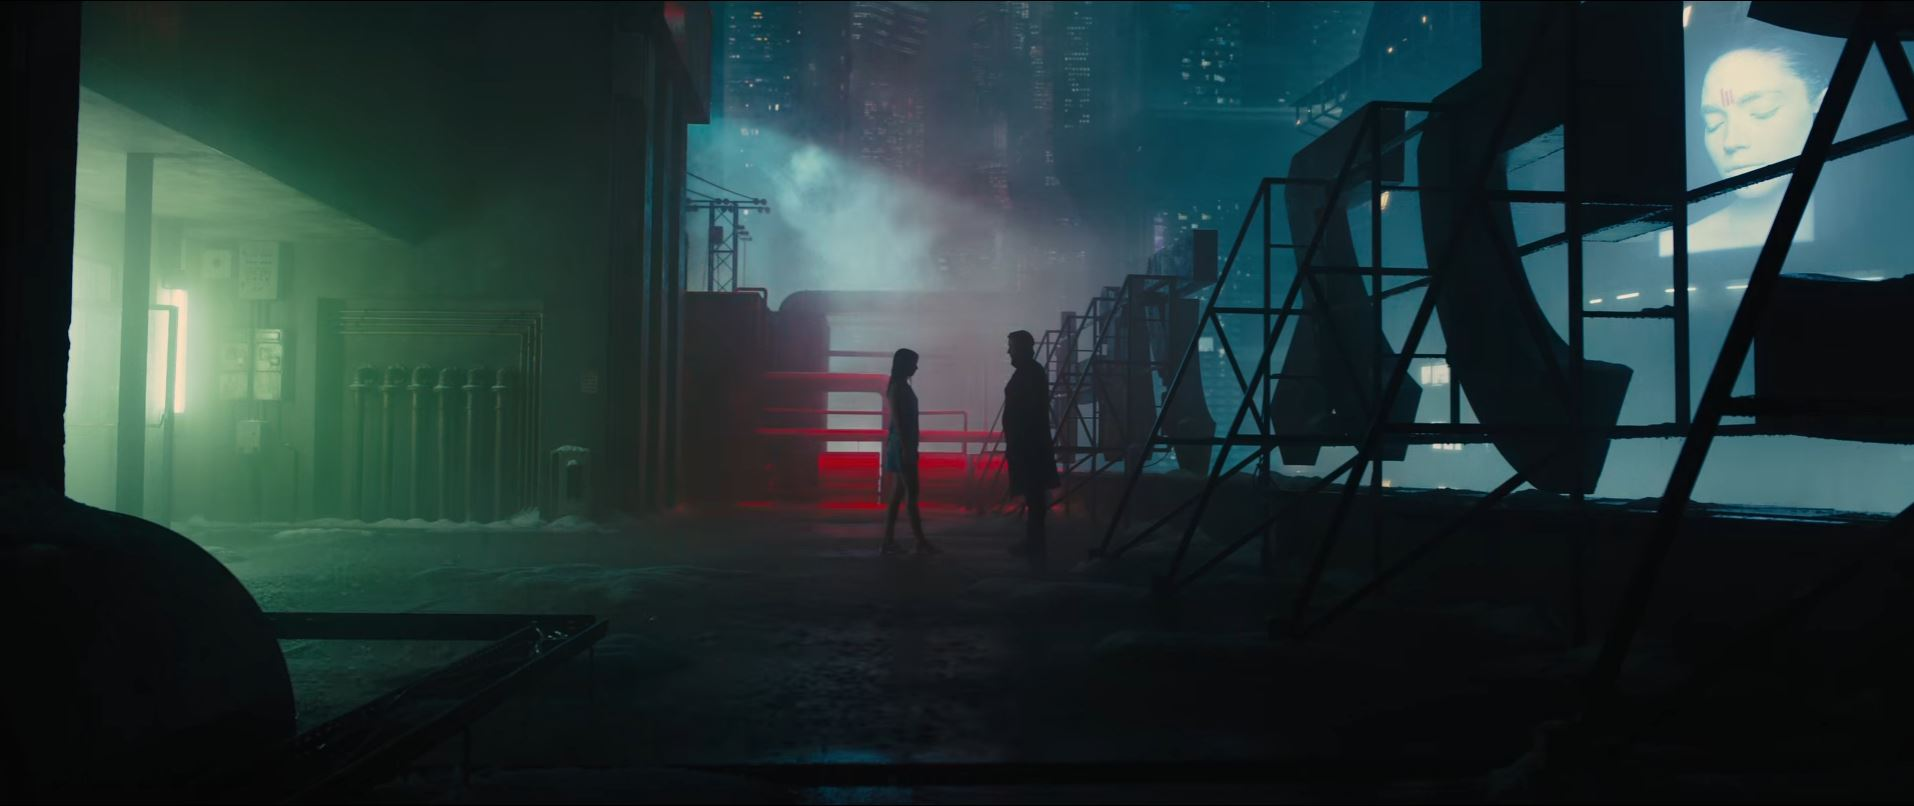 Official Trailer For Blade Runner 2049 Brings The Sci Fi